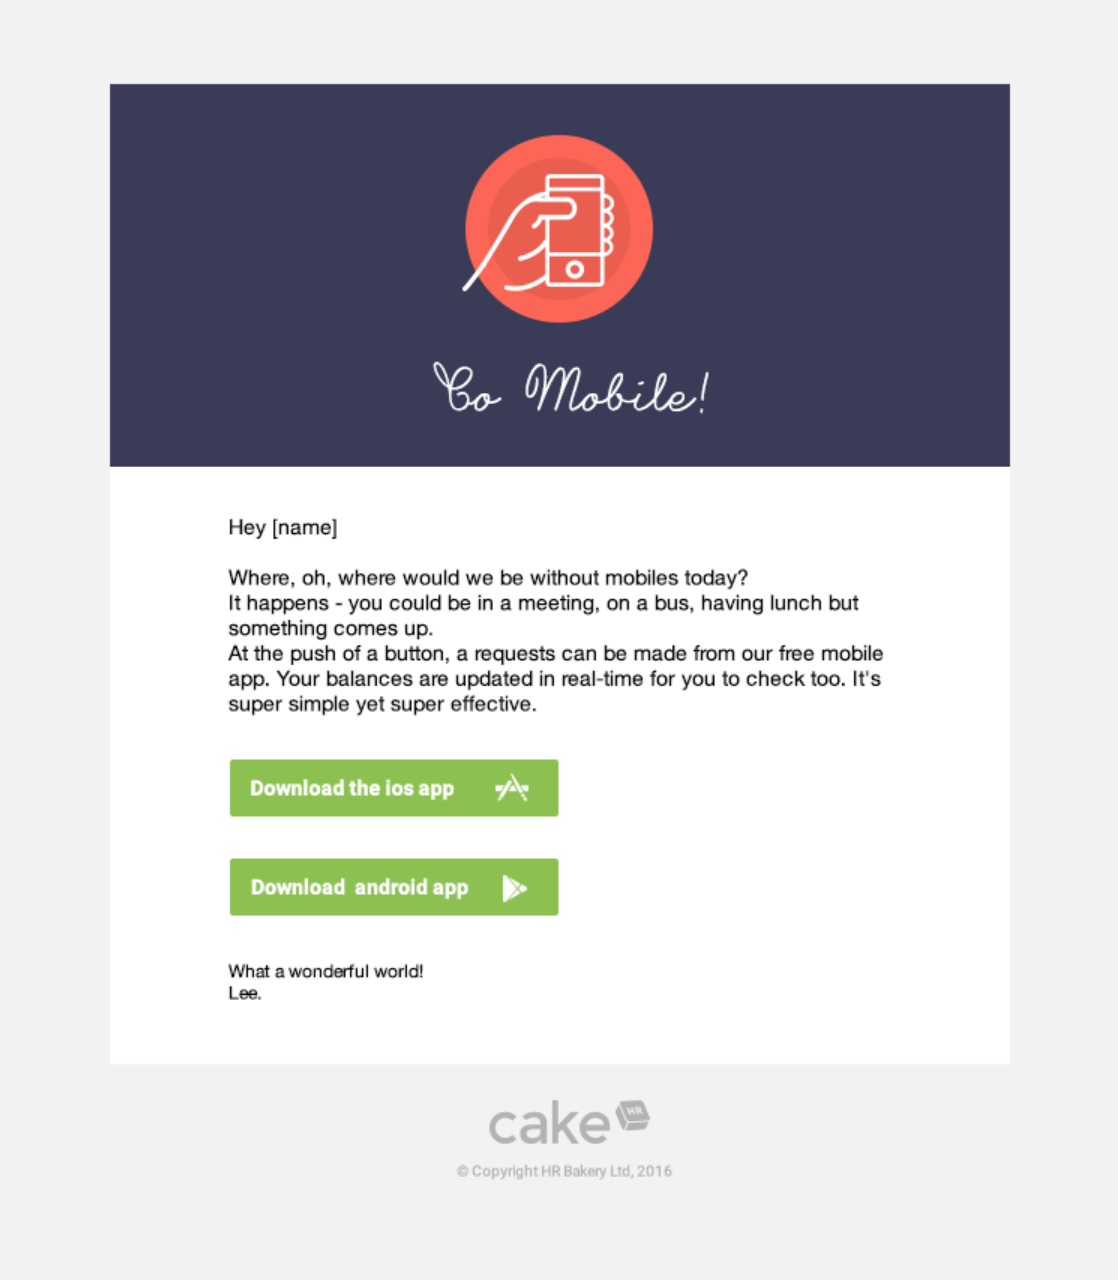 Introduction to the CakeHR mobile app email example